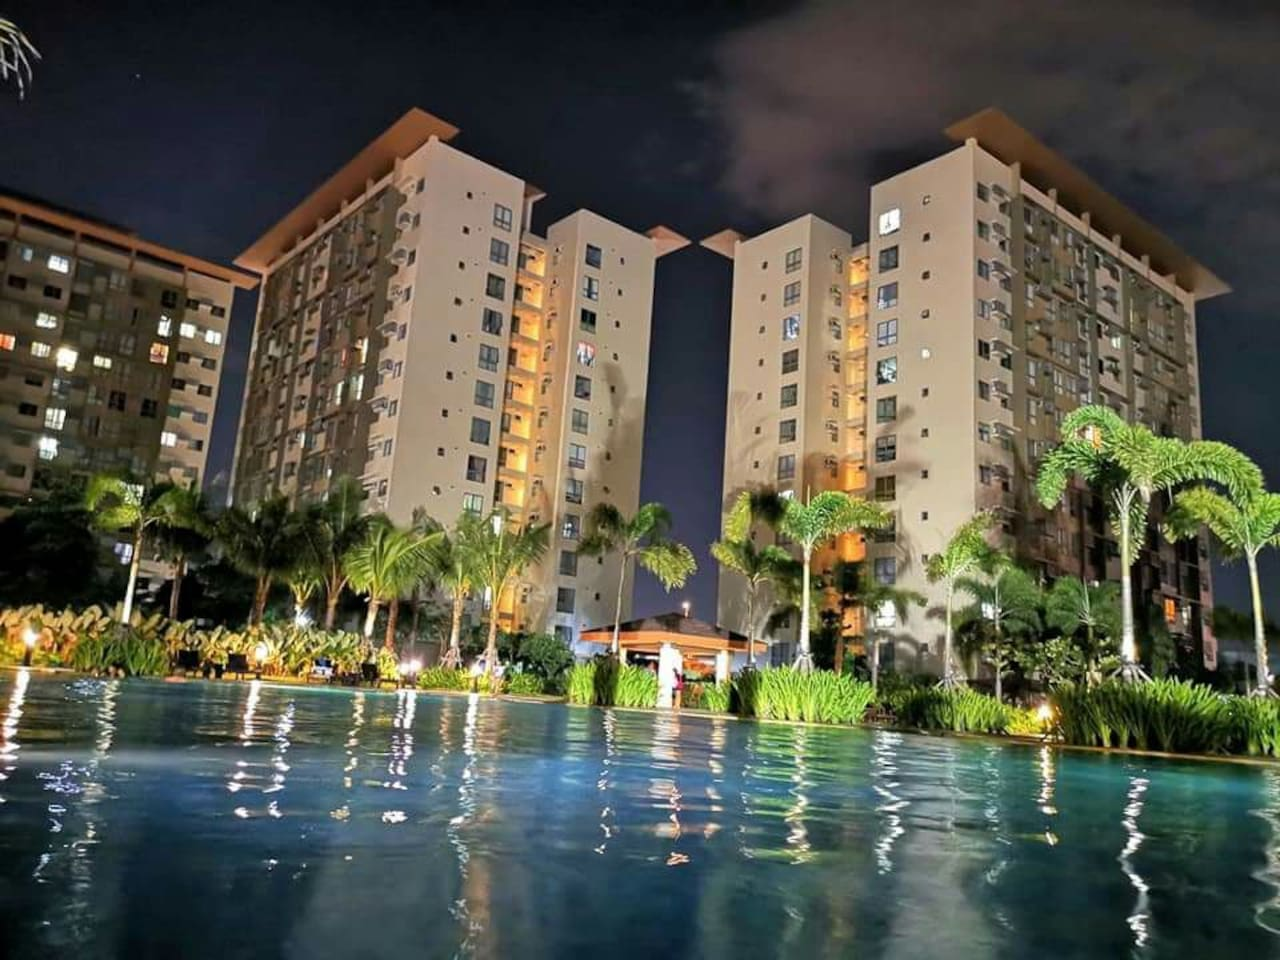 Experience the pool even at night for its relaxing and warm water that soothes what your body needs.